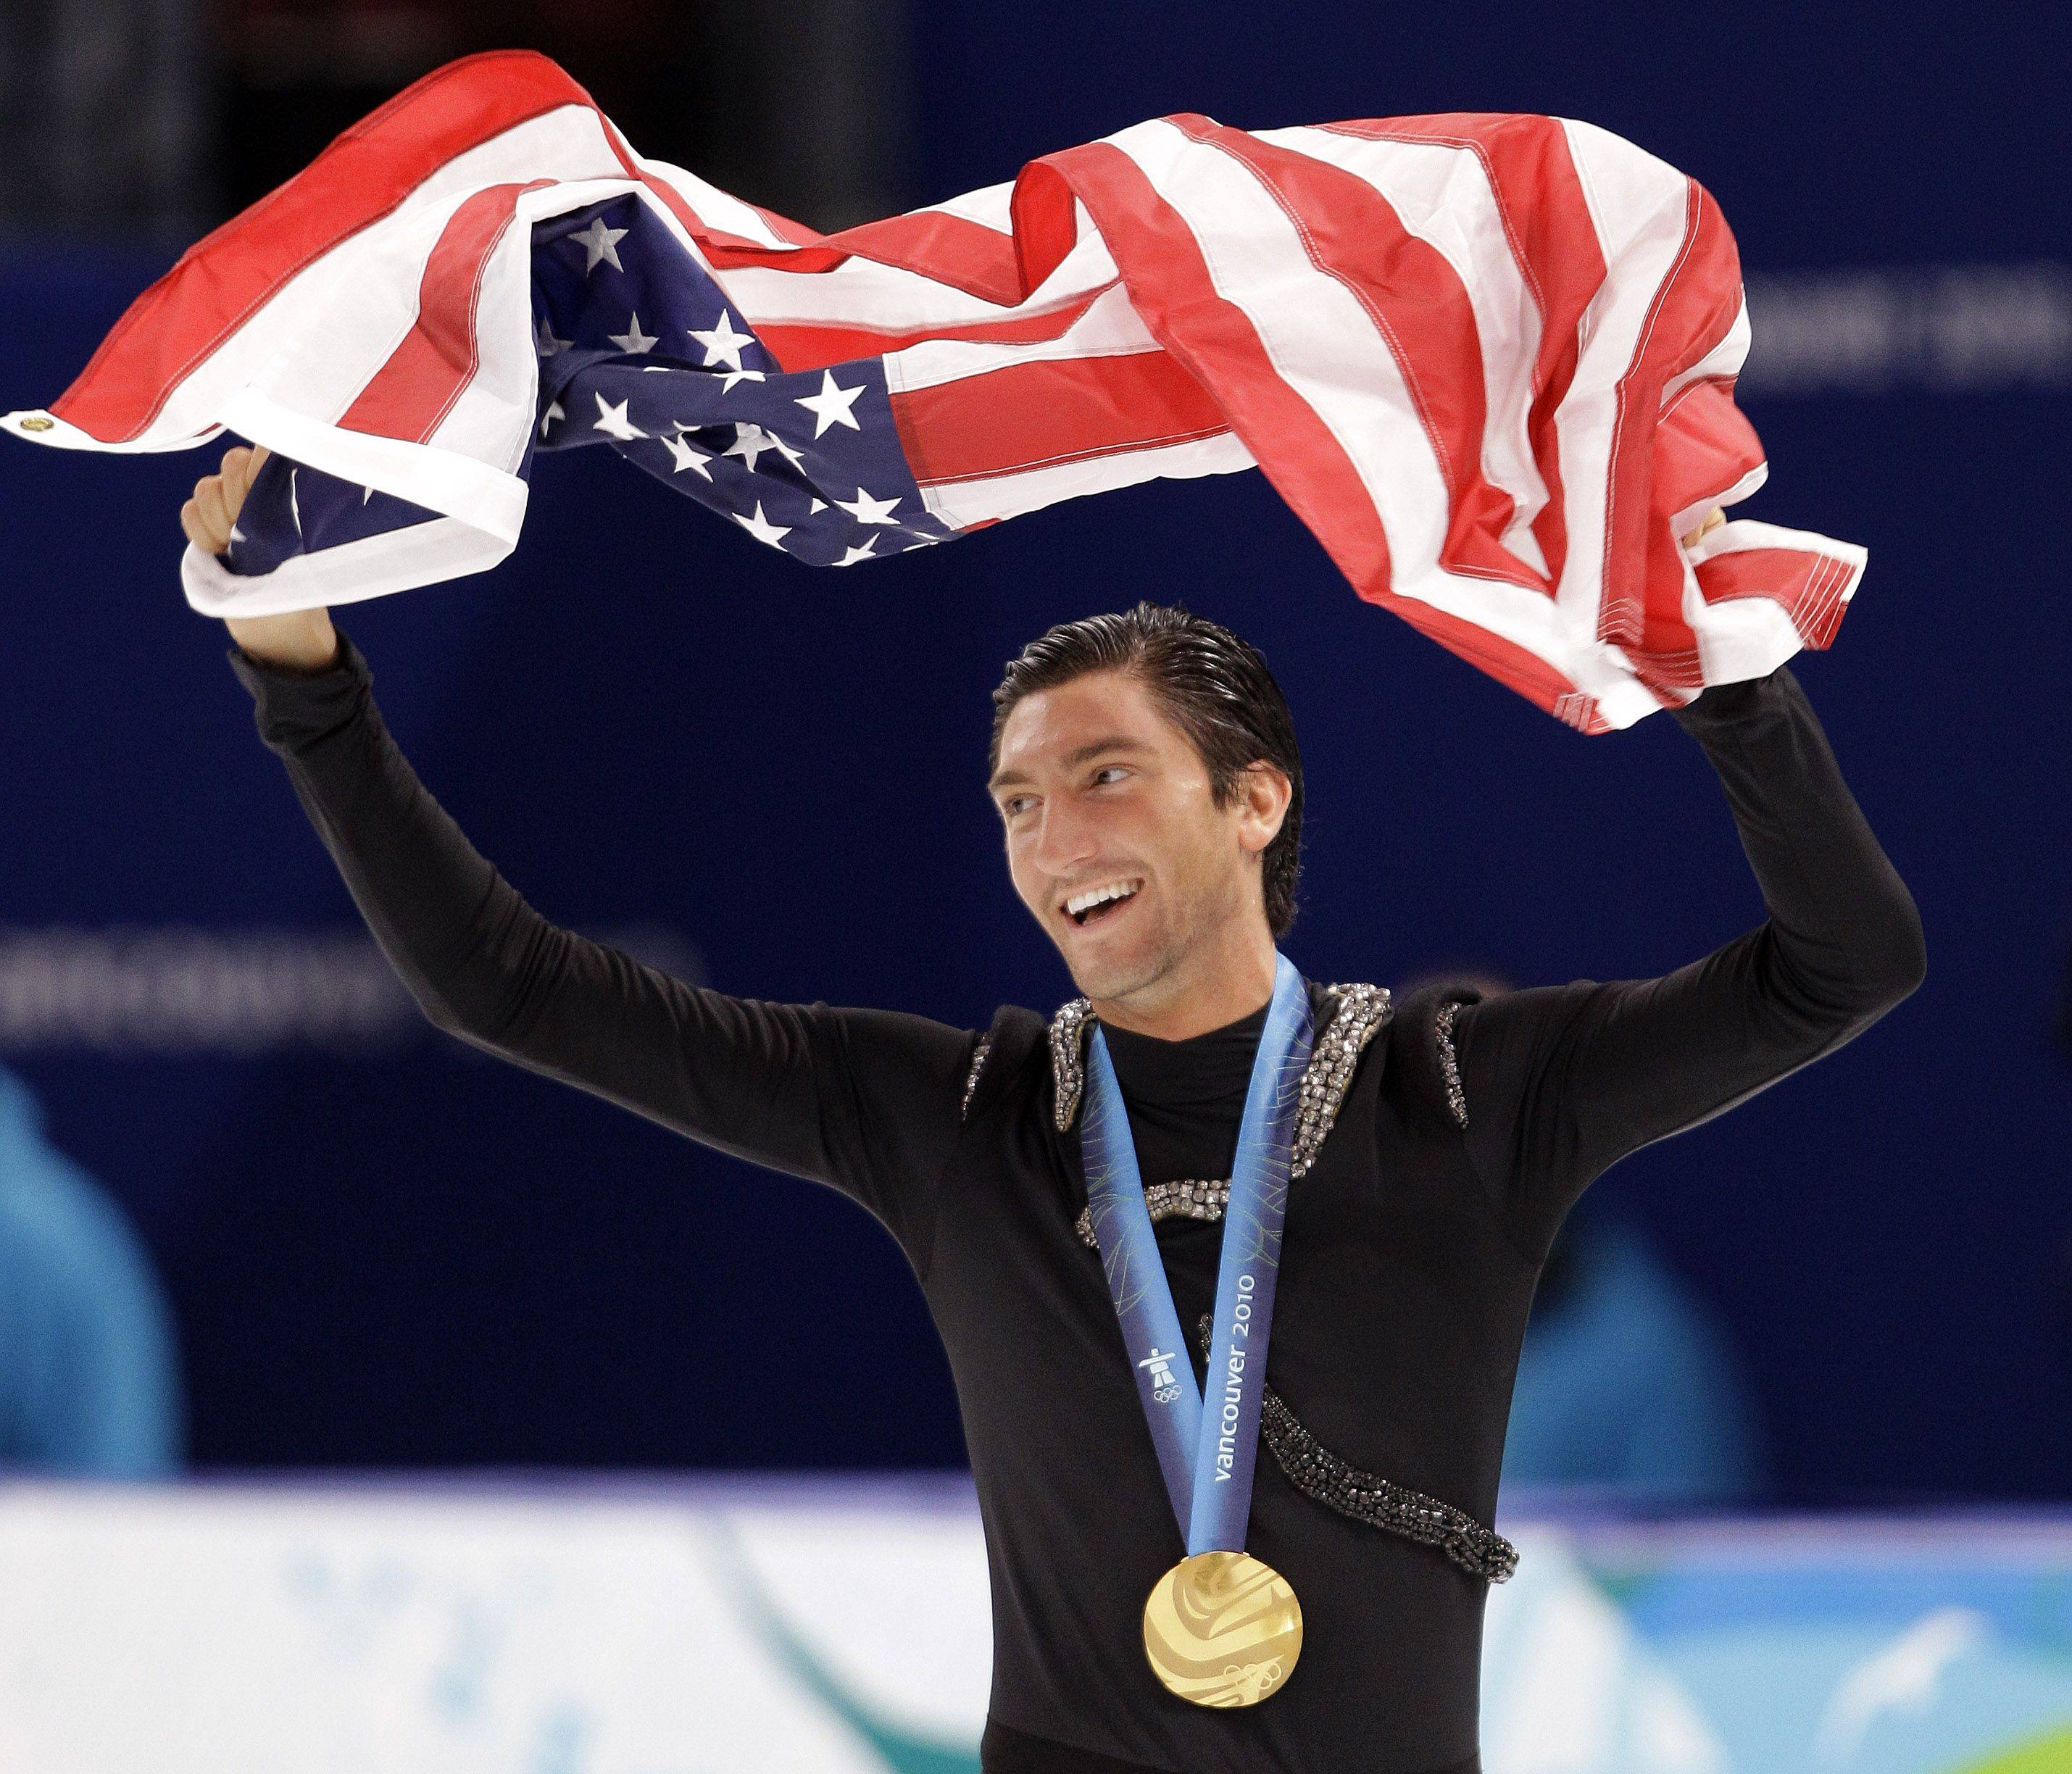 Naperville native Evan Lysacek waves the U.S. flag during the victory ceremony after winning gold at the Vancouver 2010 Olympics in February.